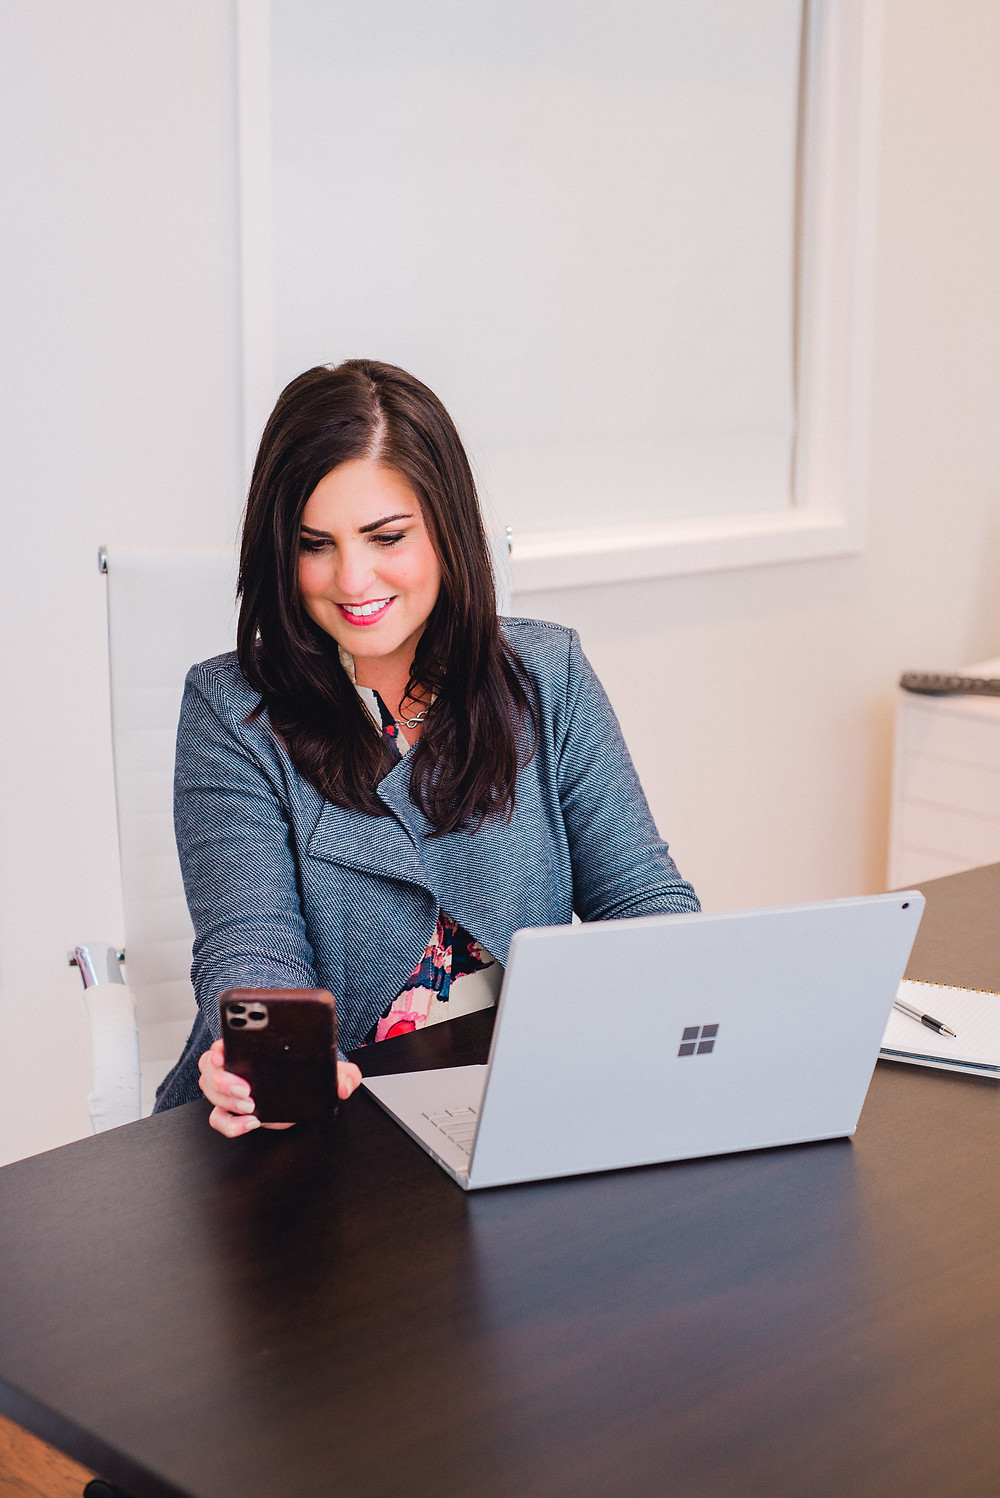 Personal branding photos for luxury real estate agents